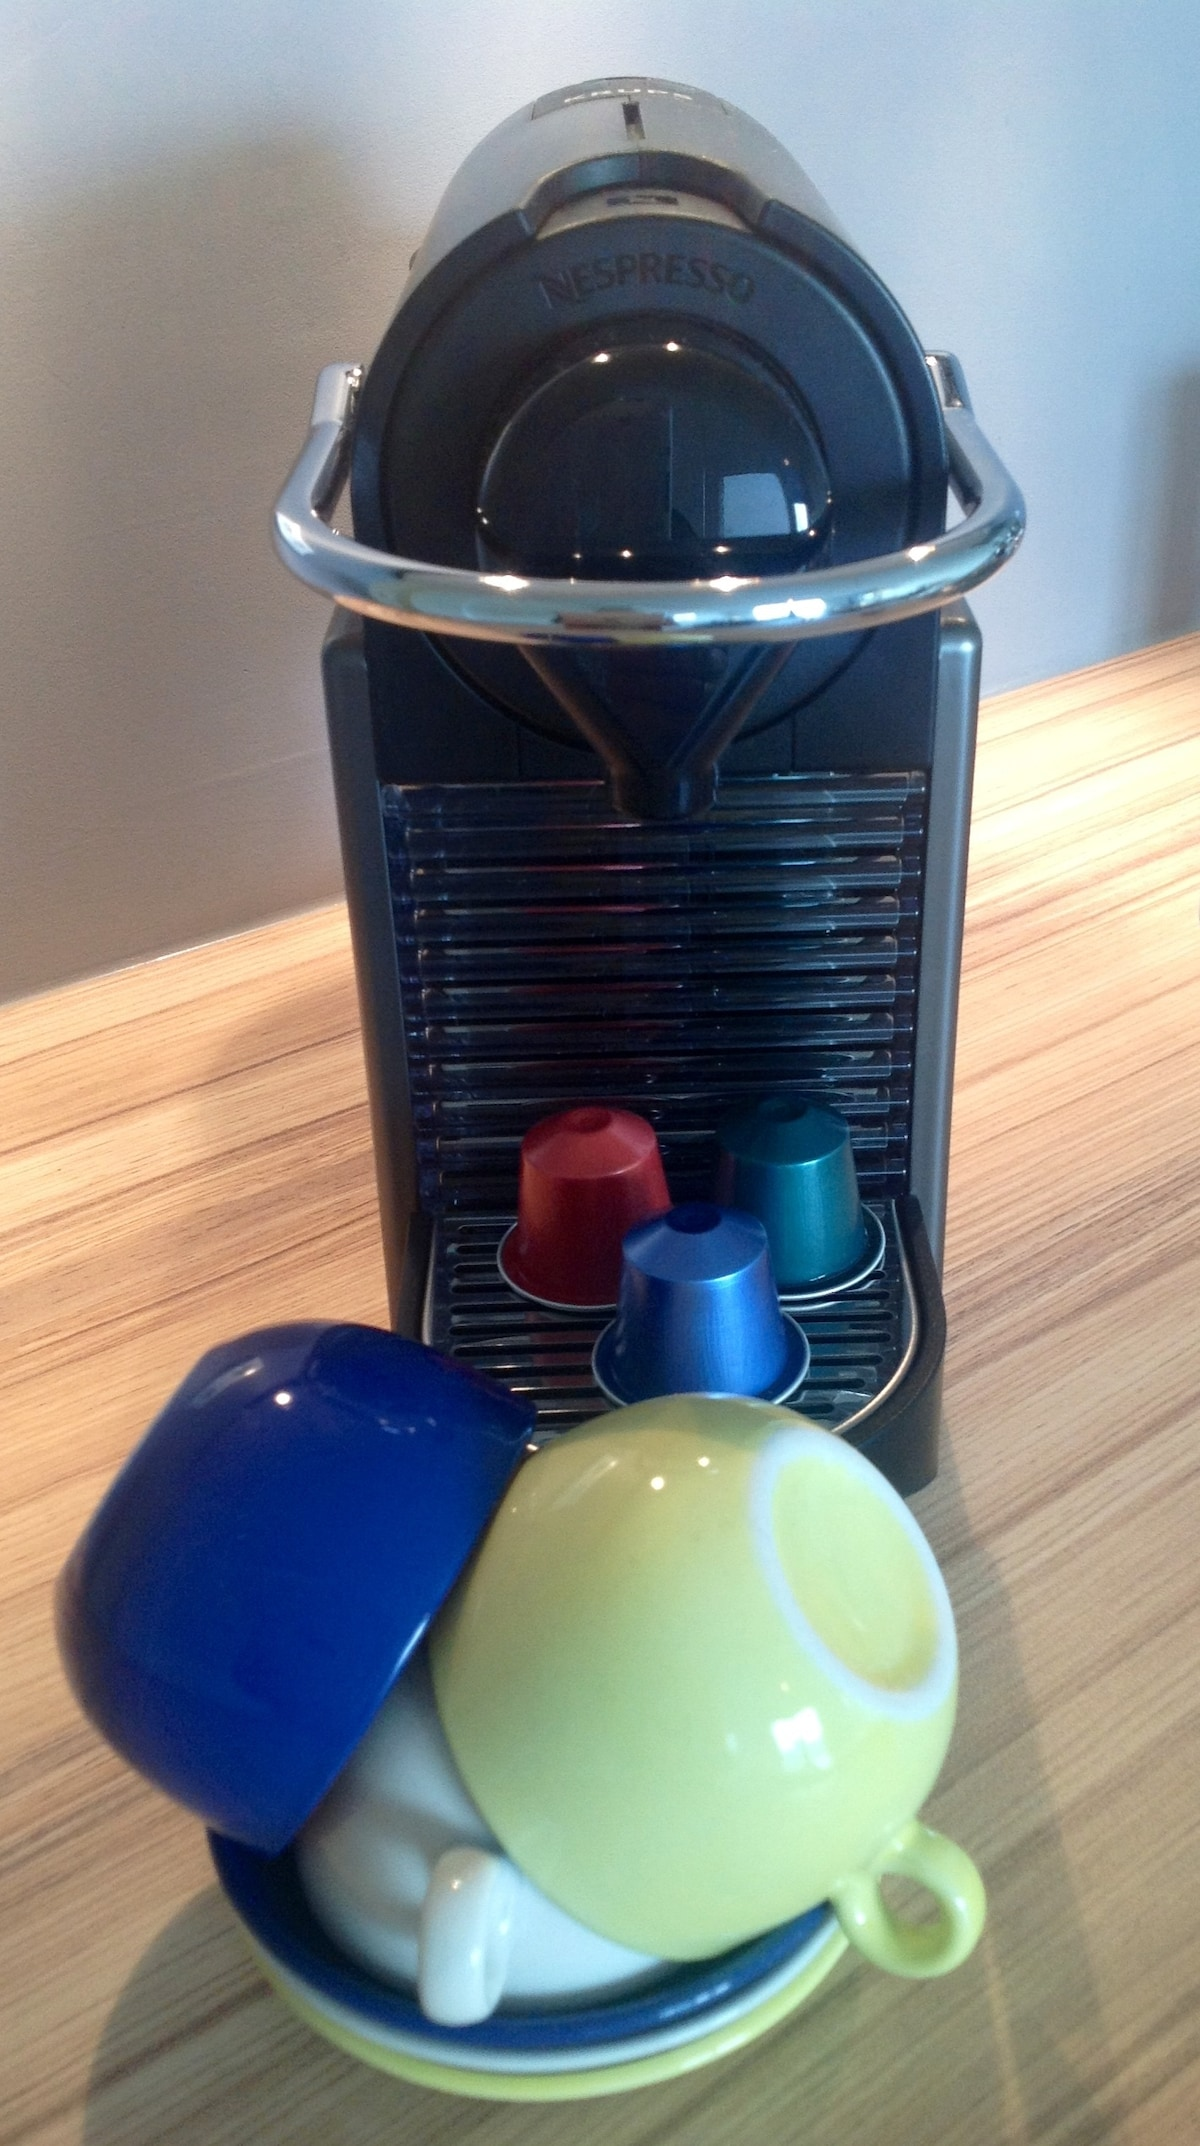 Our nespresso machine is for your use and the first days cups are free :0) you can pick up a fresh supply at the Bijenkorf  !